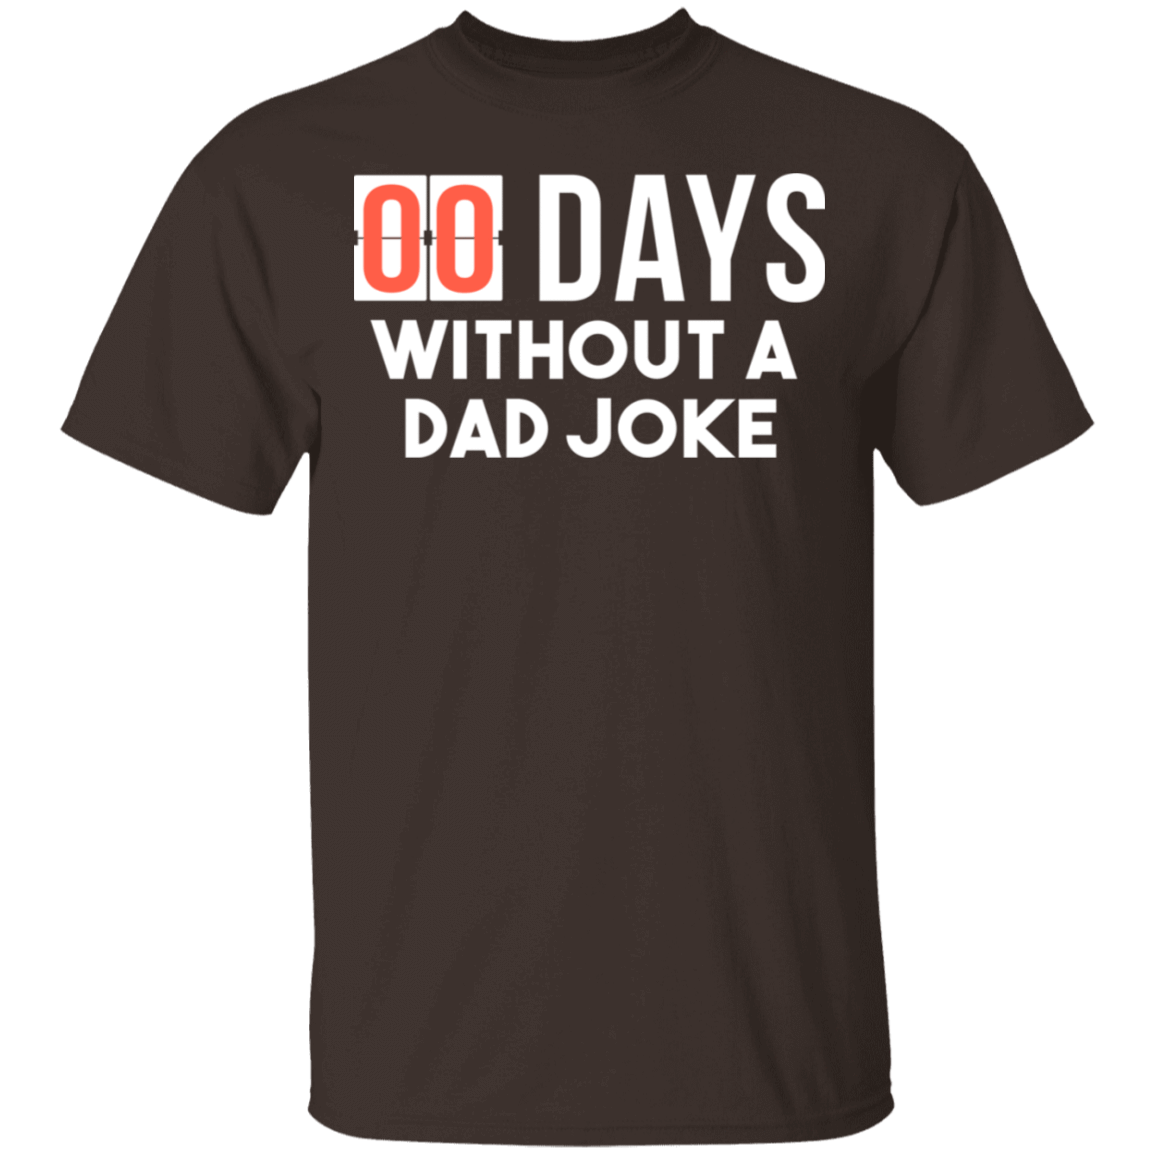 00 Days Without A Dad Joke T-Shirts, Hoodies, Tank 22-2283-79929314-12087 - Tee Ript